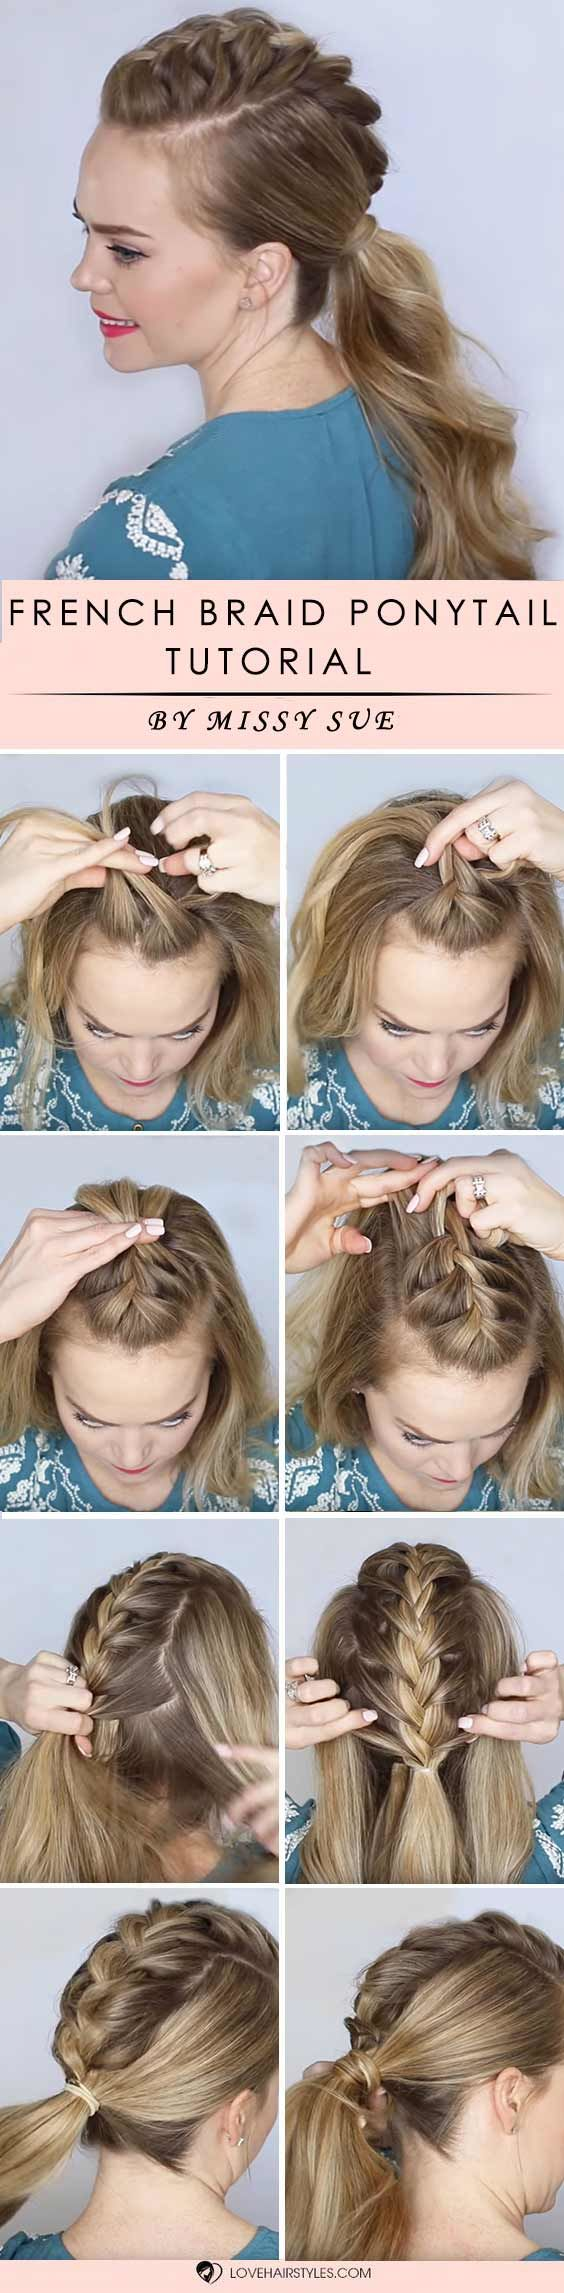 French Braided Ponytail #braids #hairtutorials